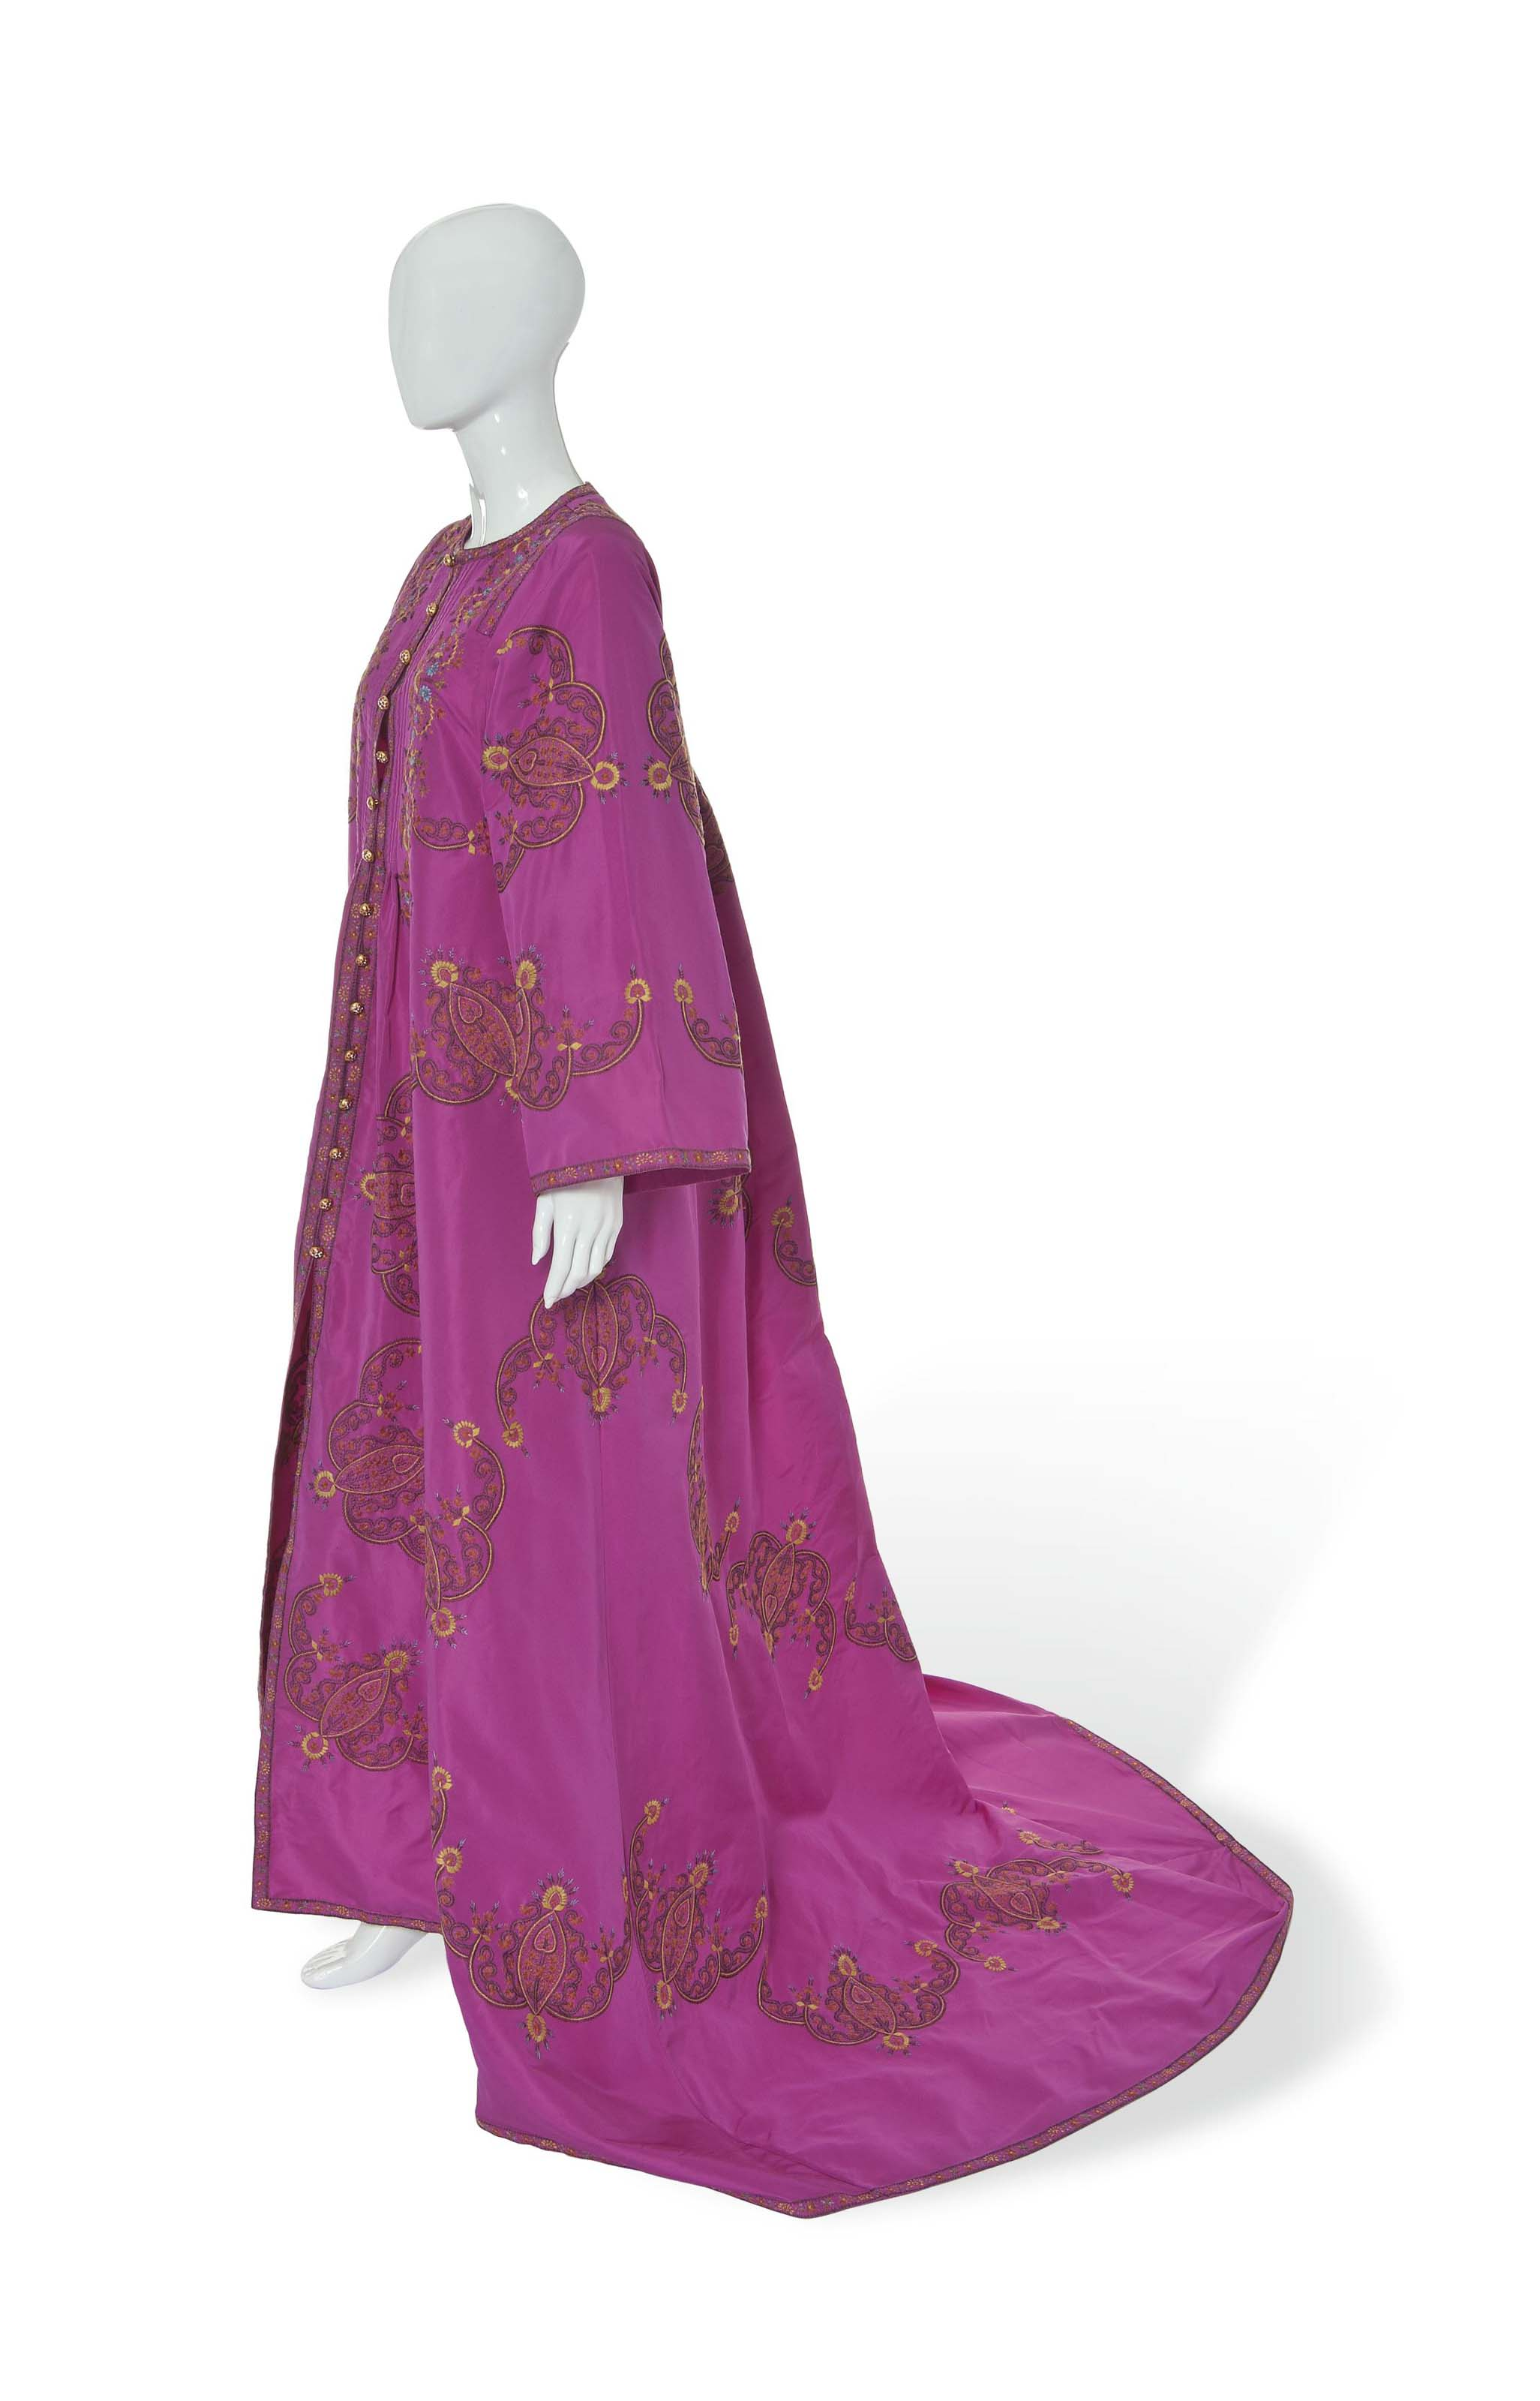 AN OSCAR DE LA RENTA EASTERN EVENING COAT AND TROUSERS AND A COCKTAIL GOWN